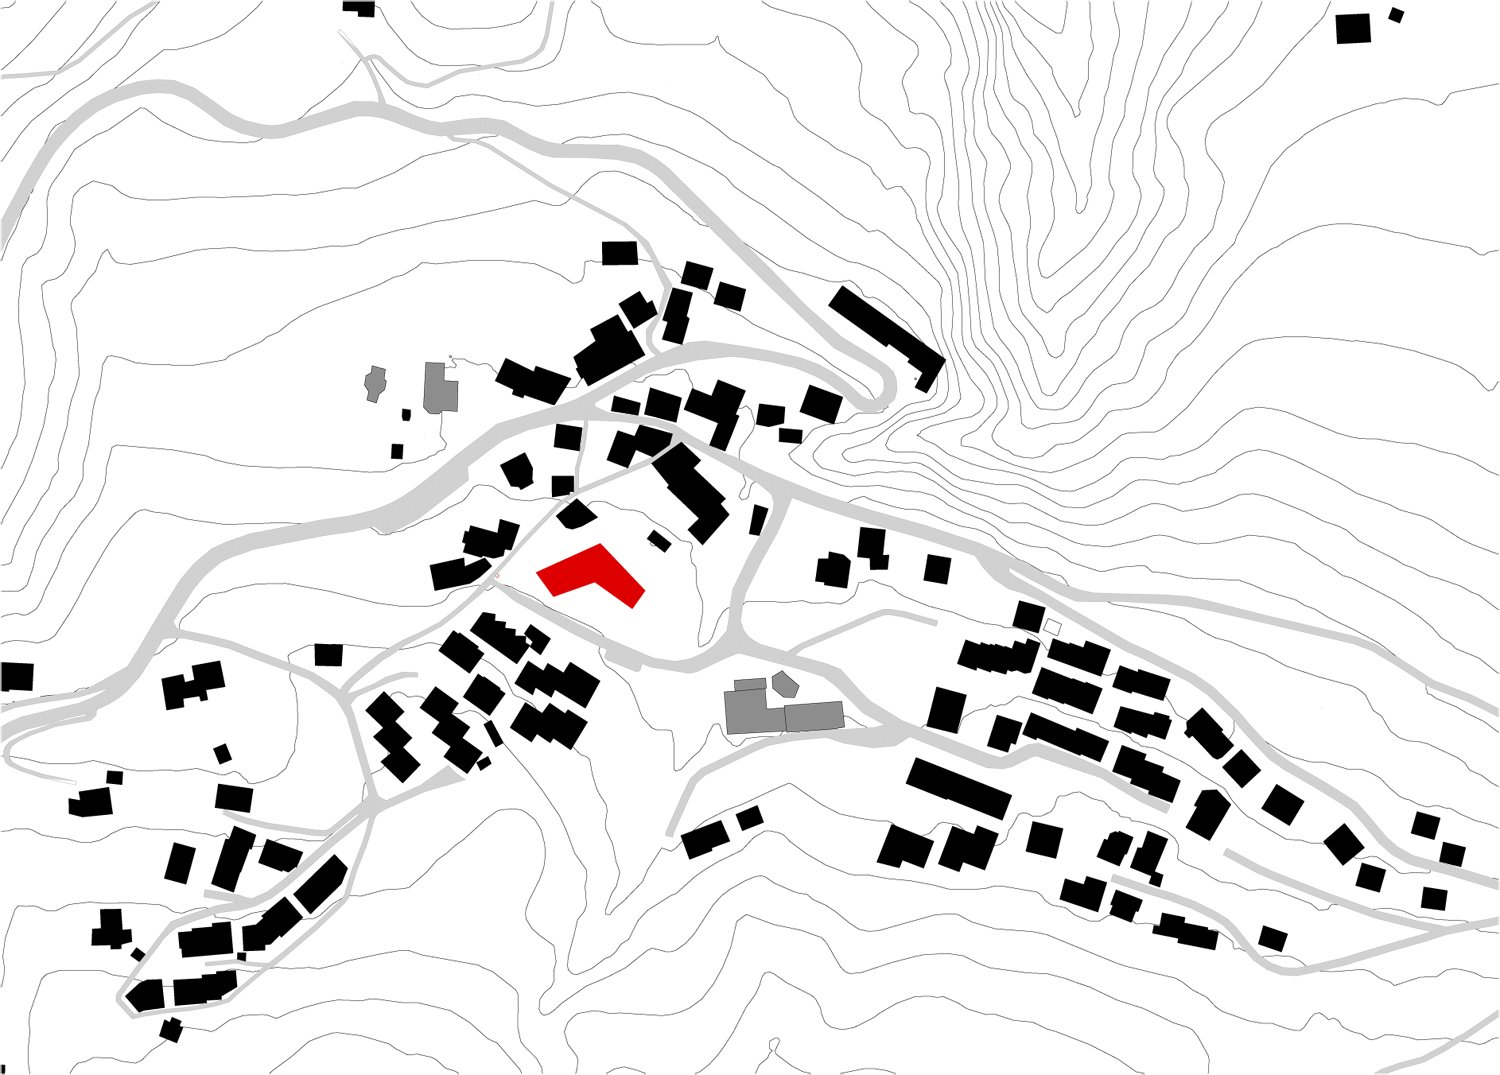 Siteplan St.Andrea 1:5000 MoDusArchitects}